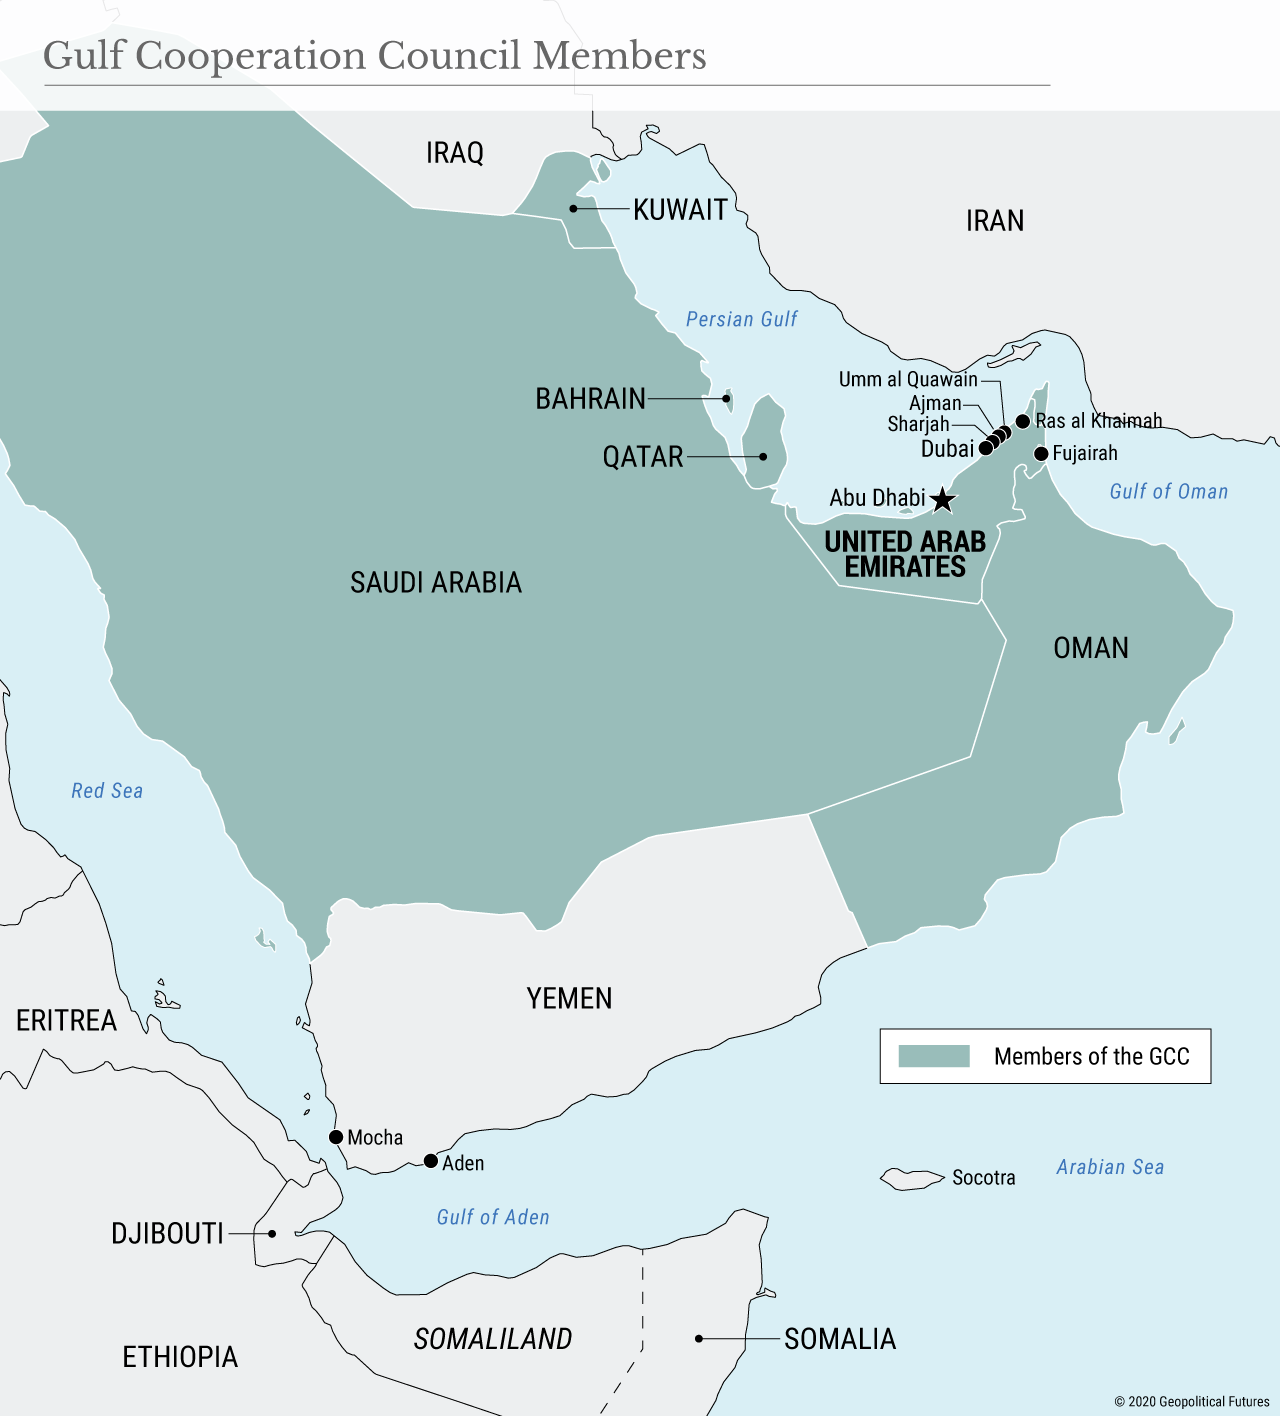 Gulf Cooperation Council Members